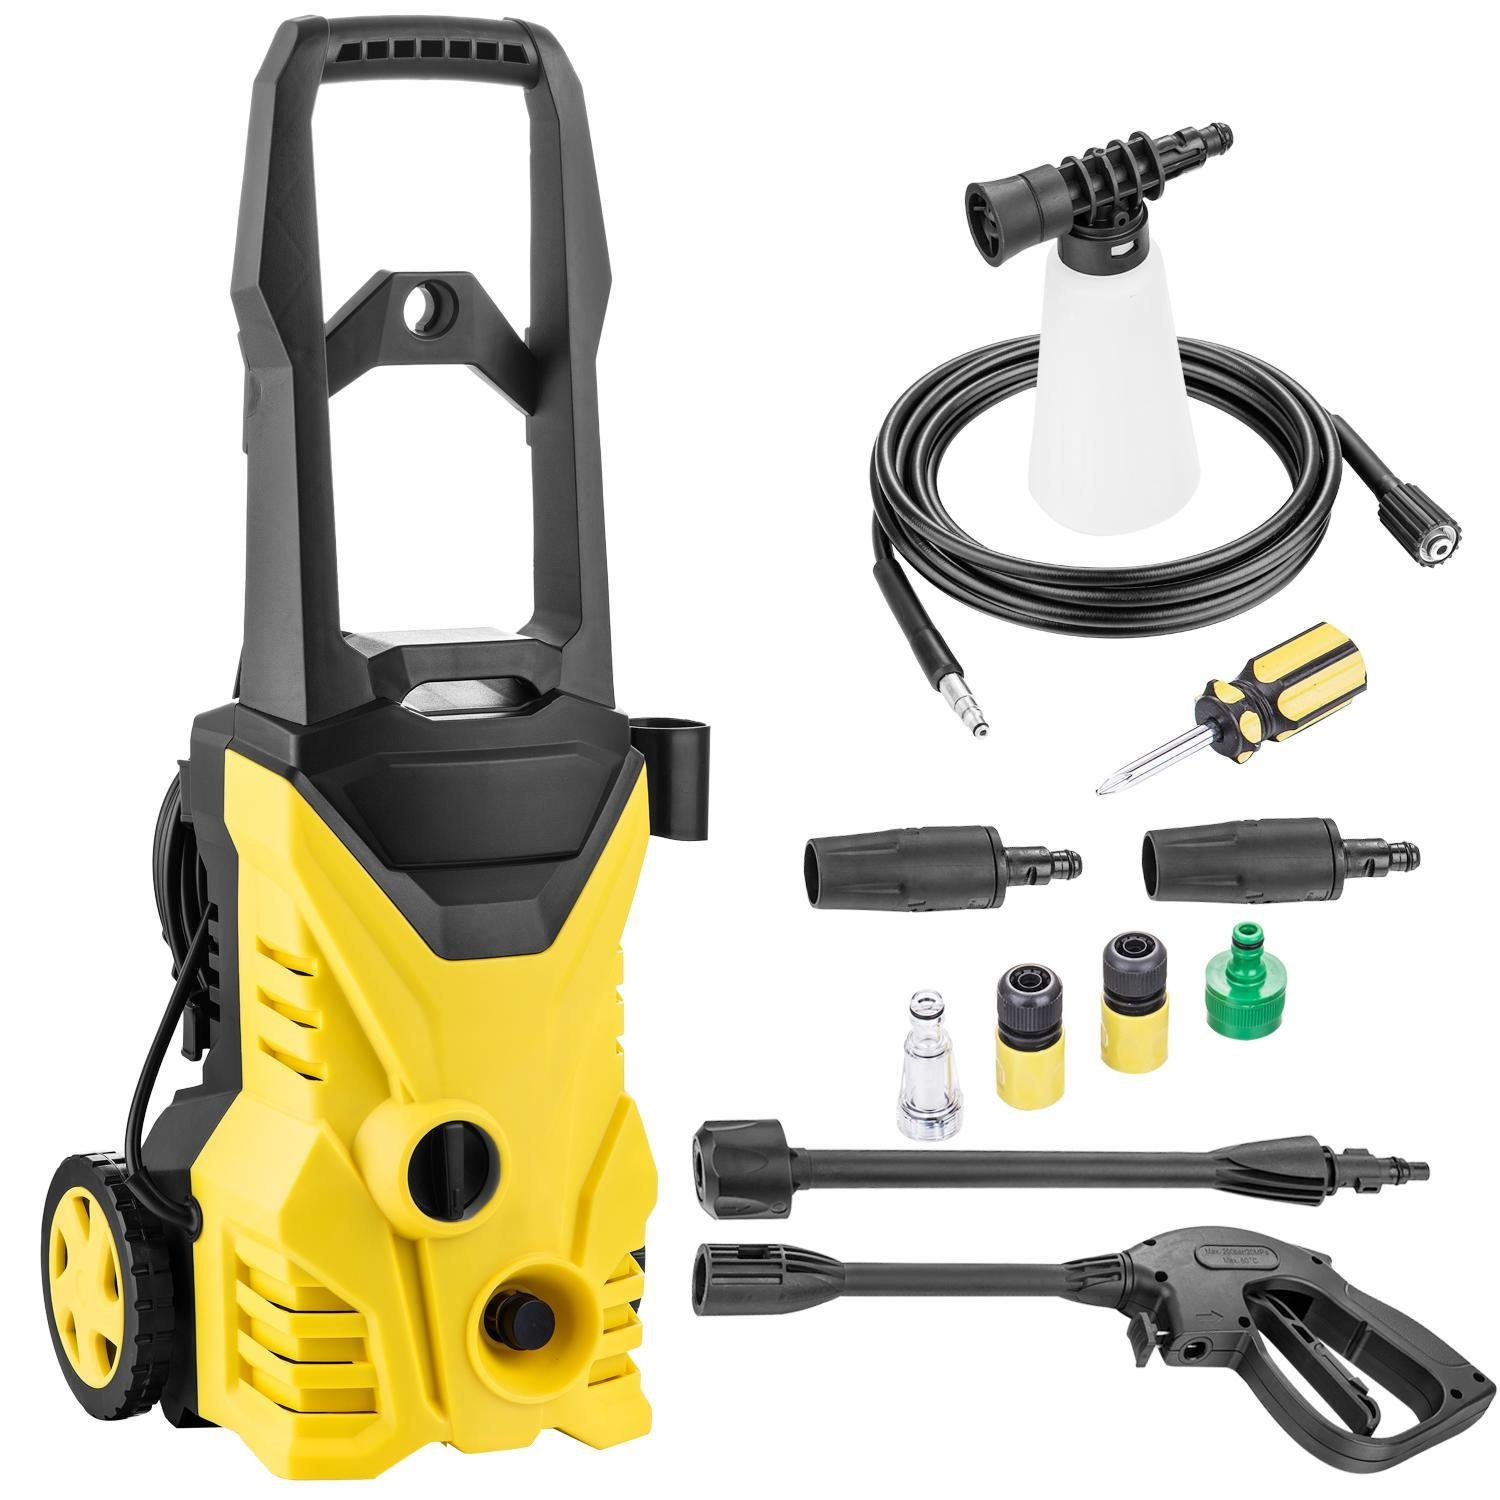 Leoneva 1.4GPM 2000psi Electric Pressure Washer Patio, High Pressure Cleaner with 2 Spray Nozzle Adapter (Yellow)